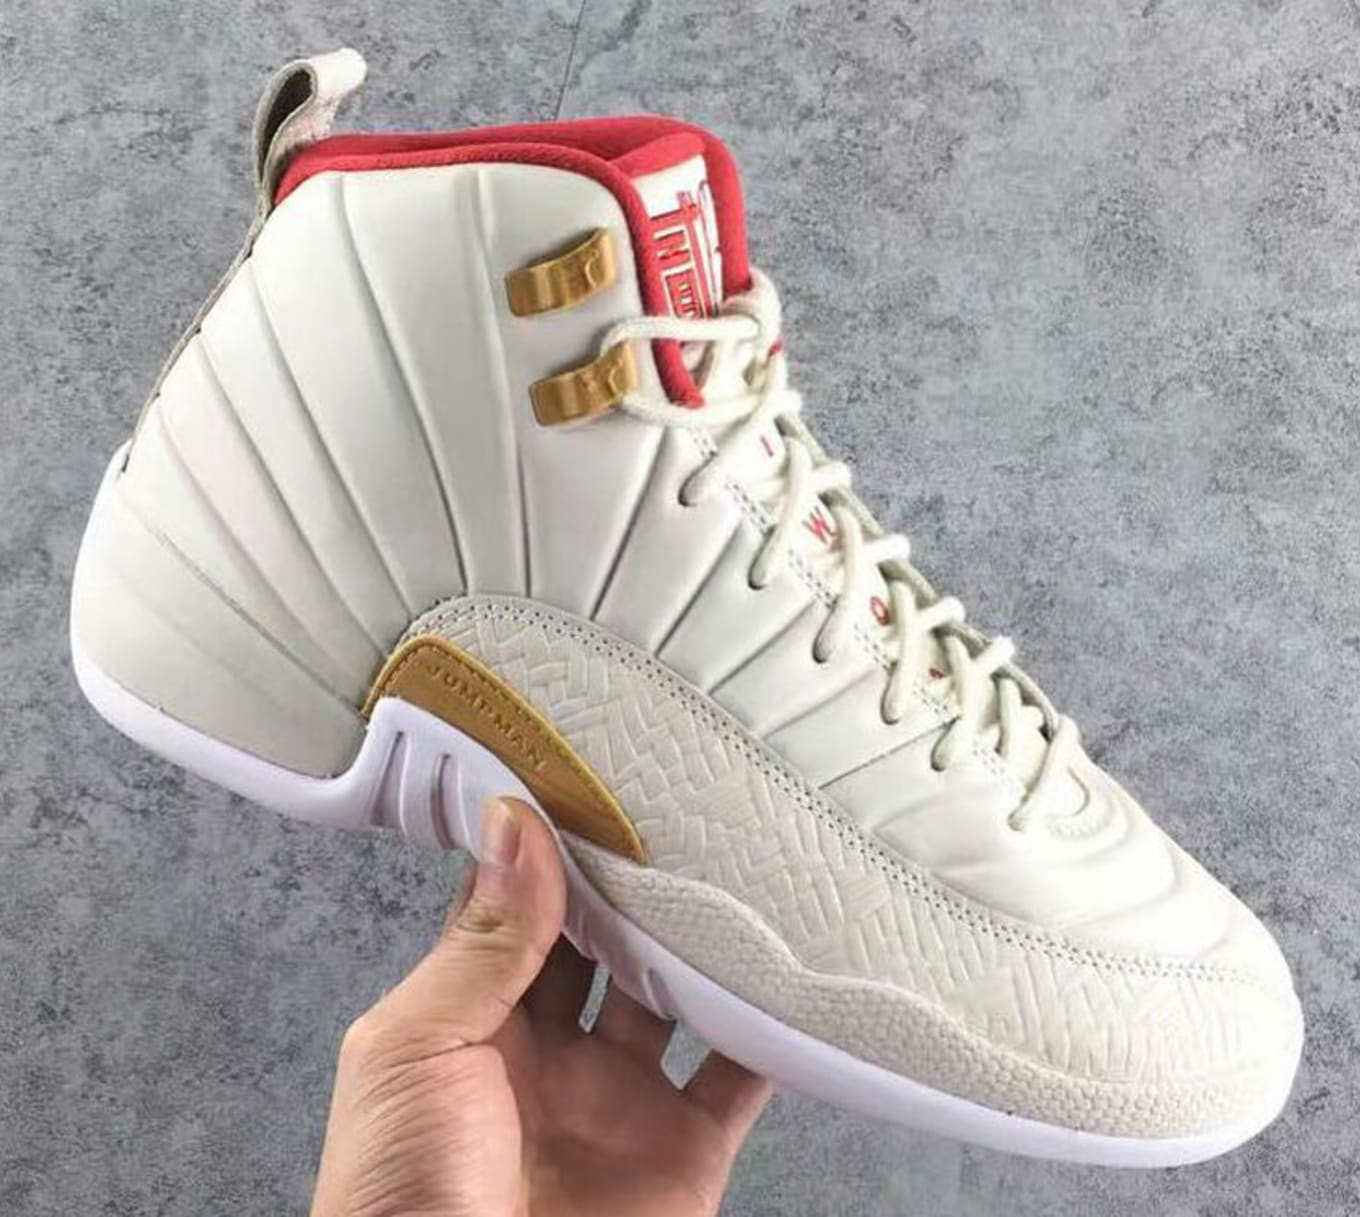 separation shoes 67142 b9407 Air Jordan 12 GG White/Red Release Date | Sole Collector